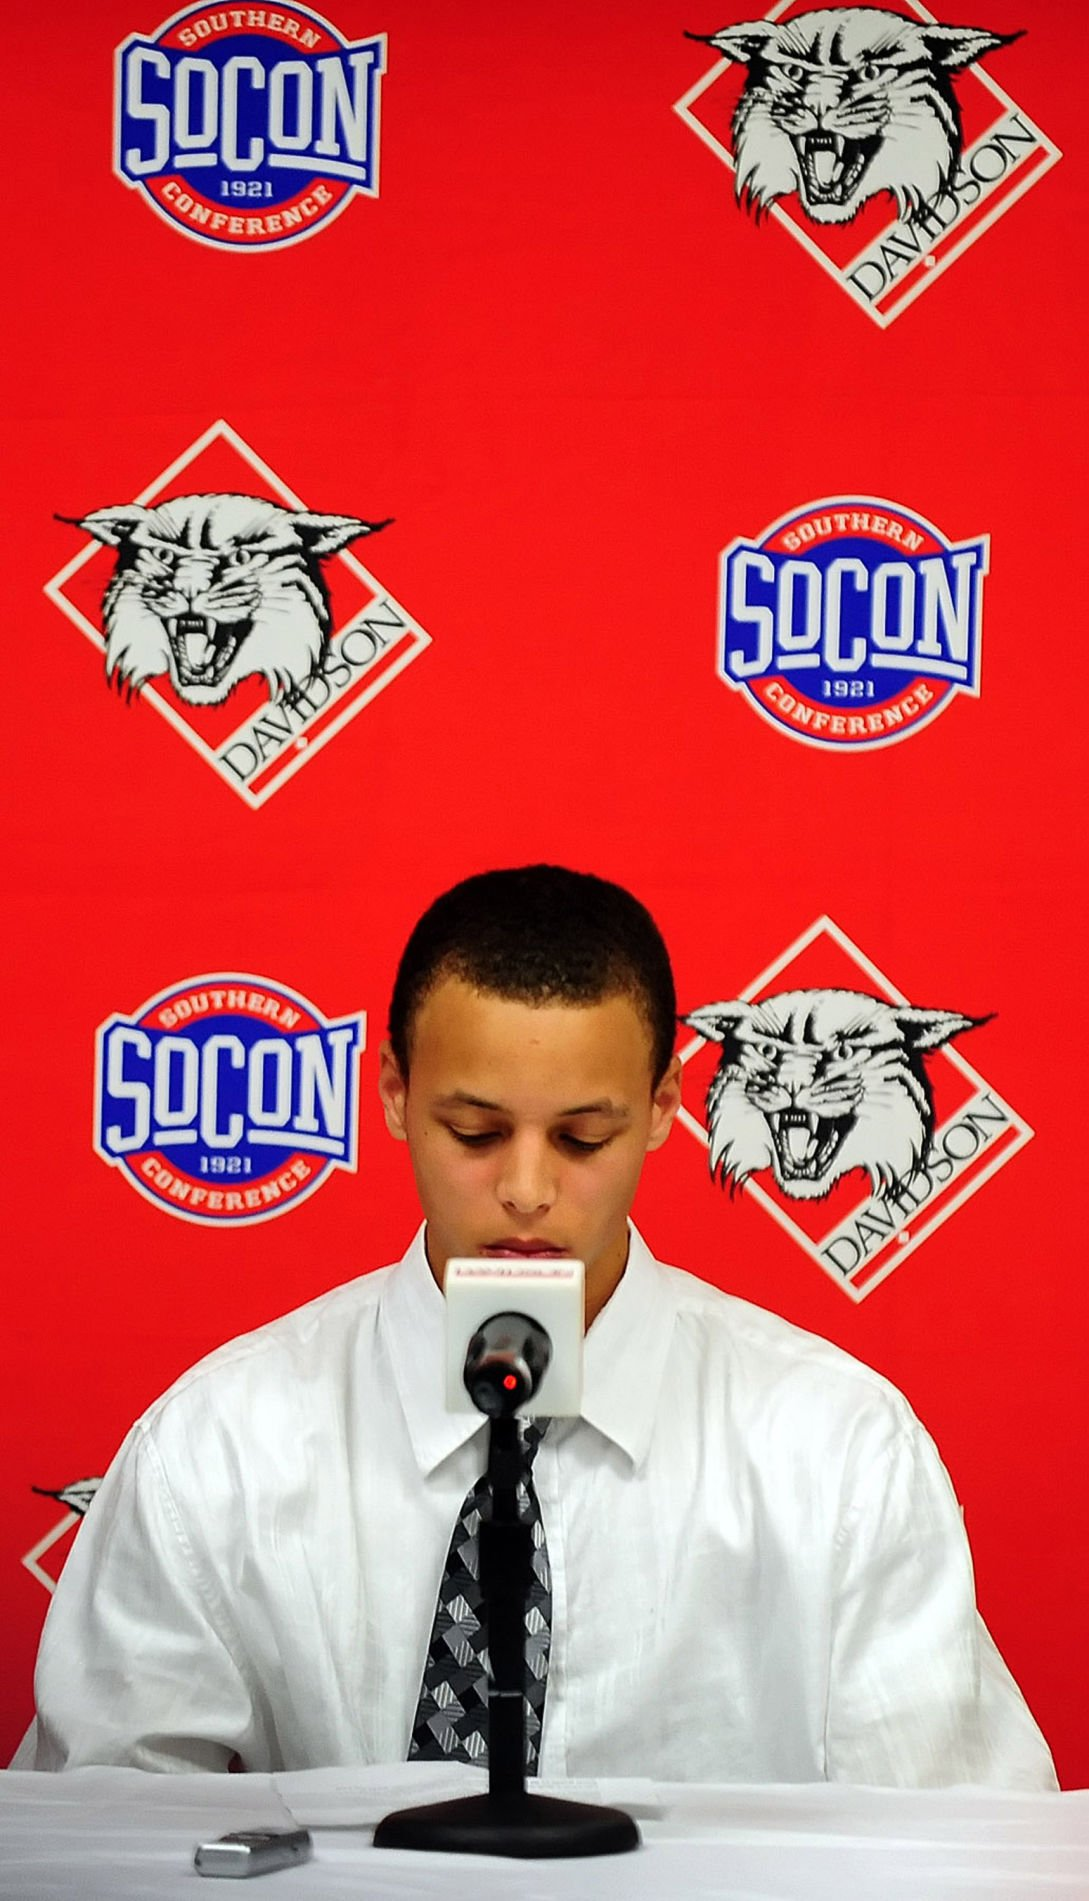 Davidson's Stephen Curry pauses during a news conference where he announced his intent to forego his senior year at Davidson College and enter the NBA draft in Davidson, N.C., on Thursday, April 23, 2009.